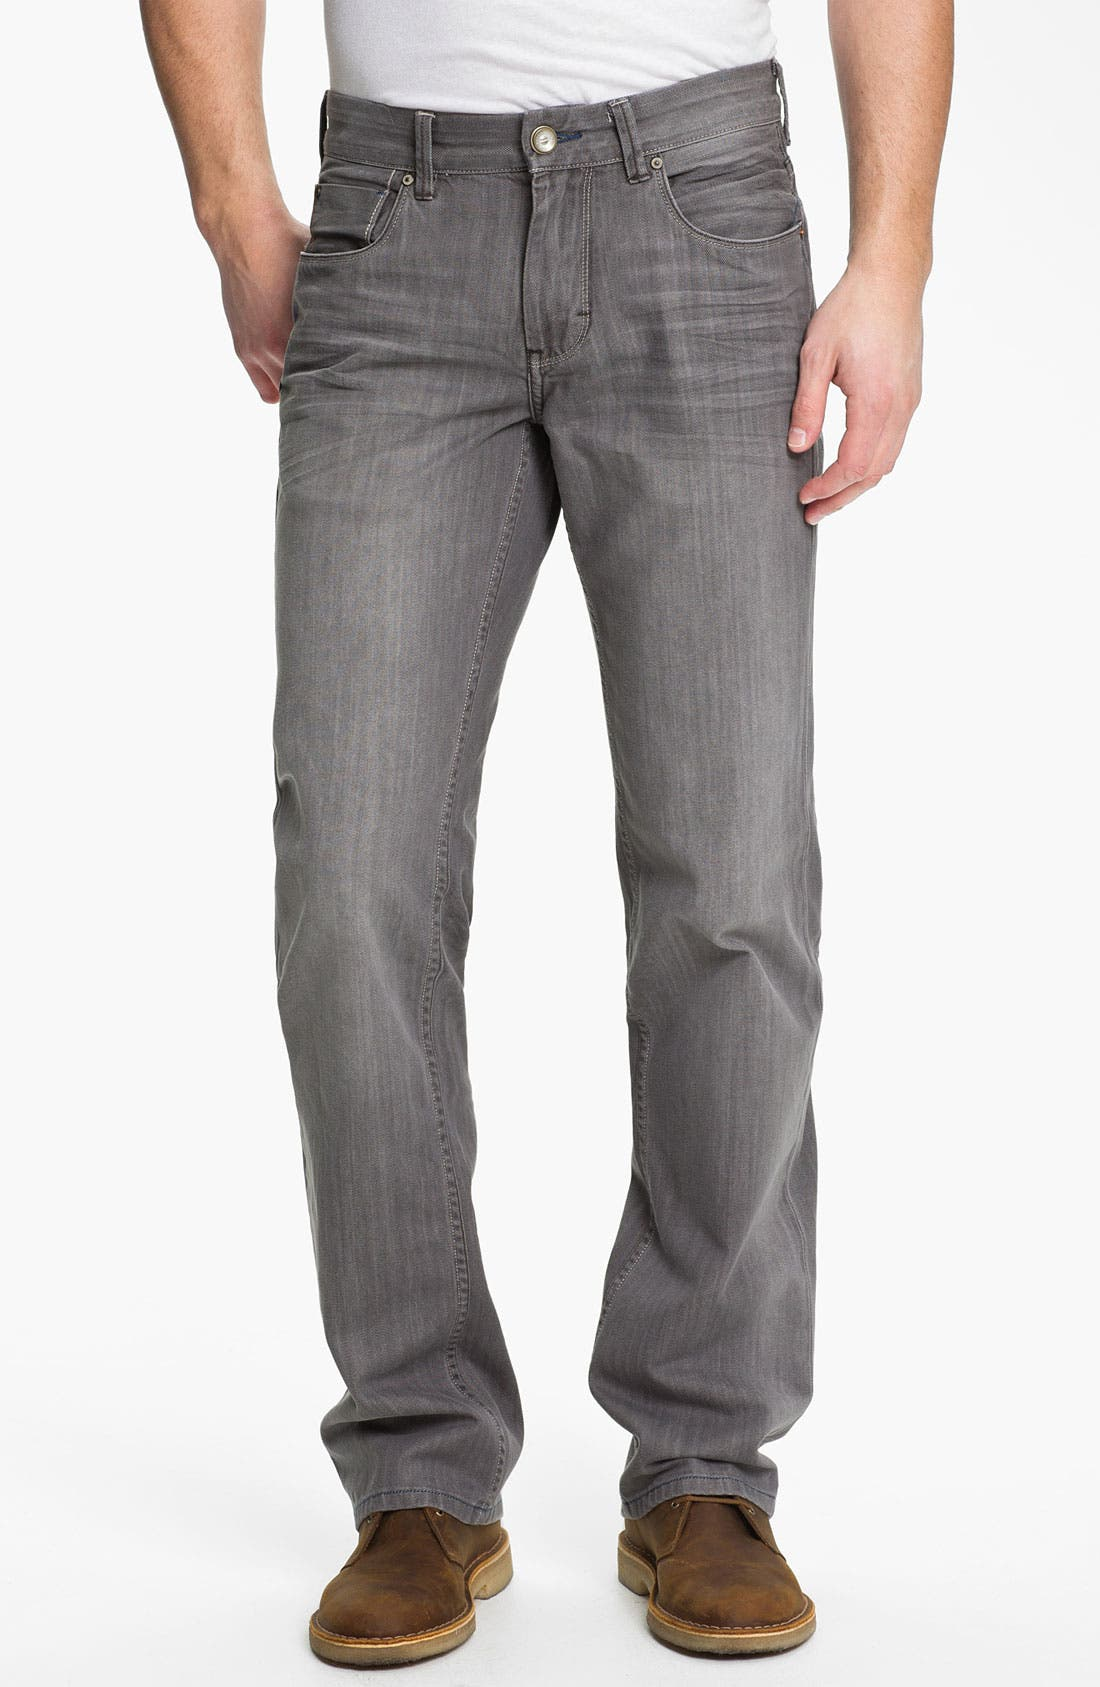 Alternate Image 1 Selected - Tommy Bahama Denim 'Zander' Authentic Straight Leg Jeans